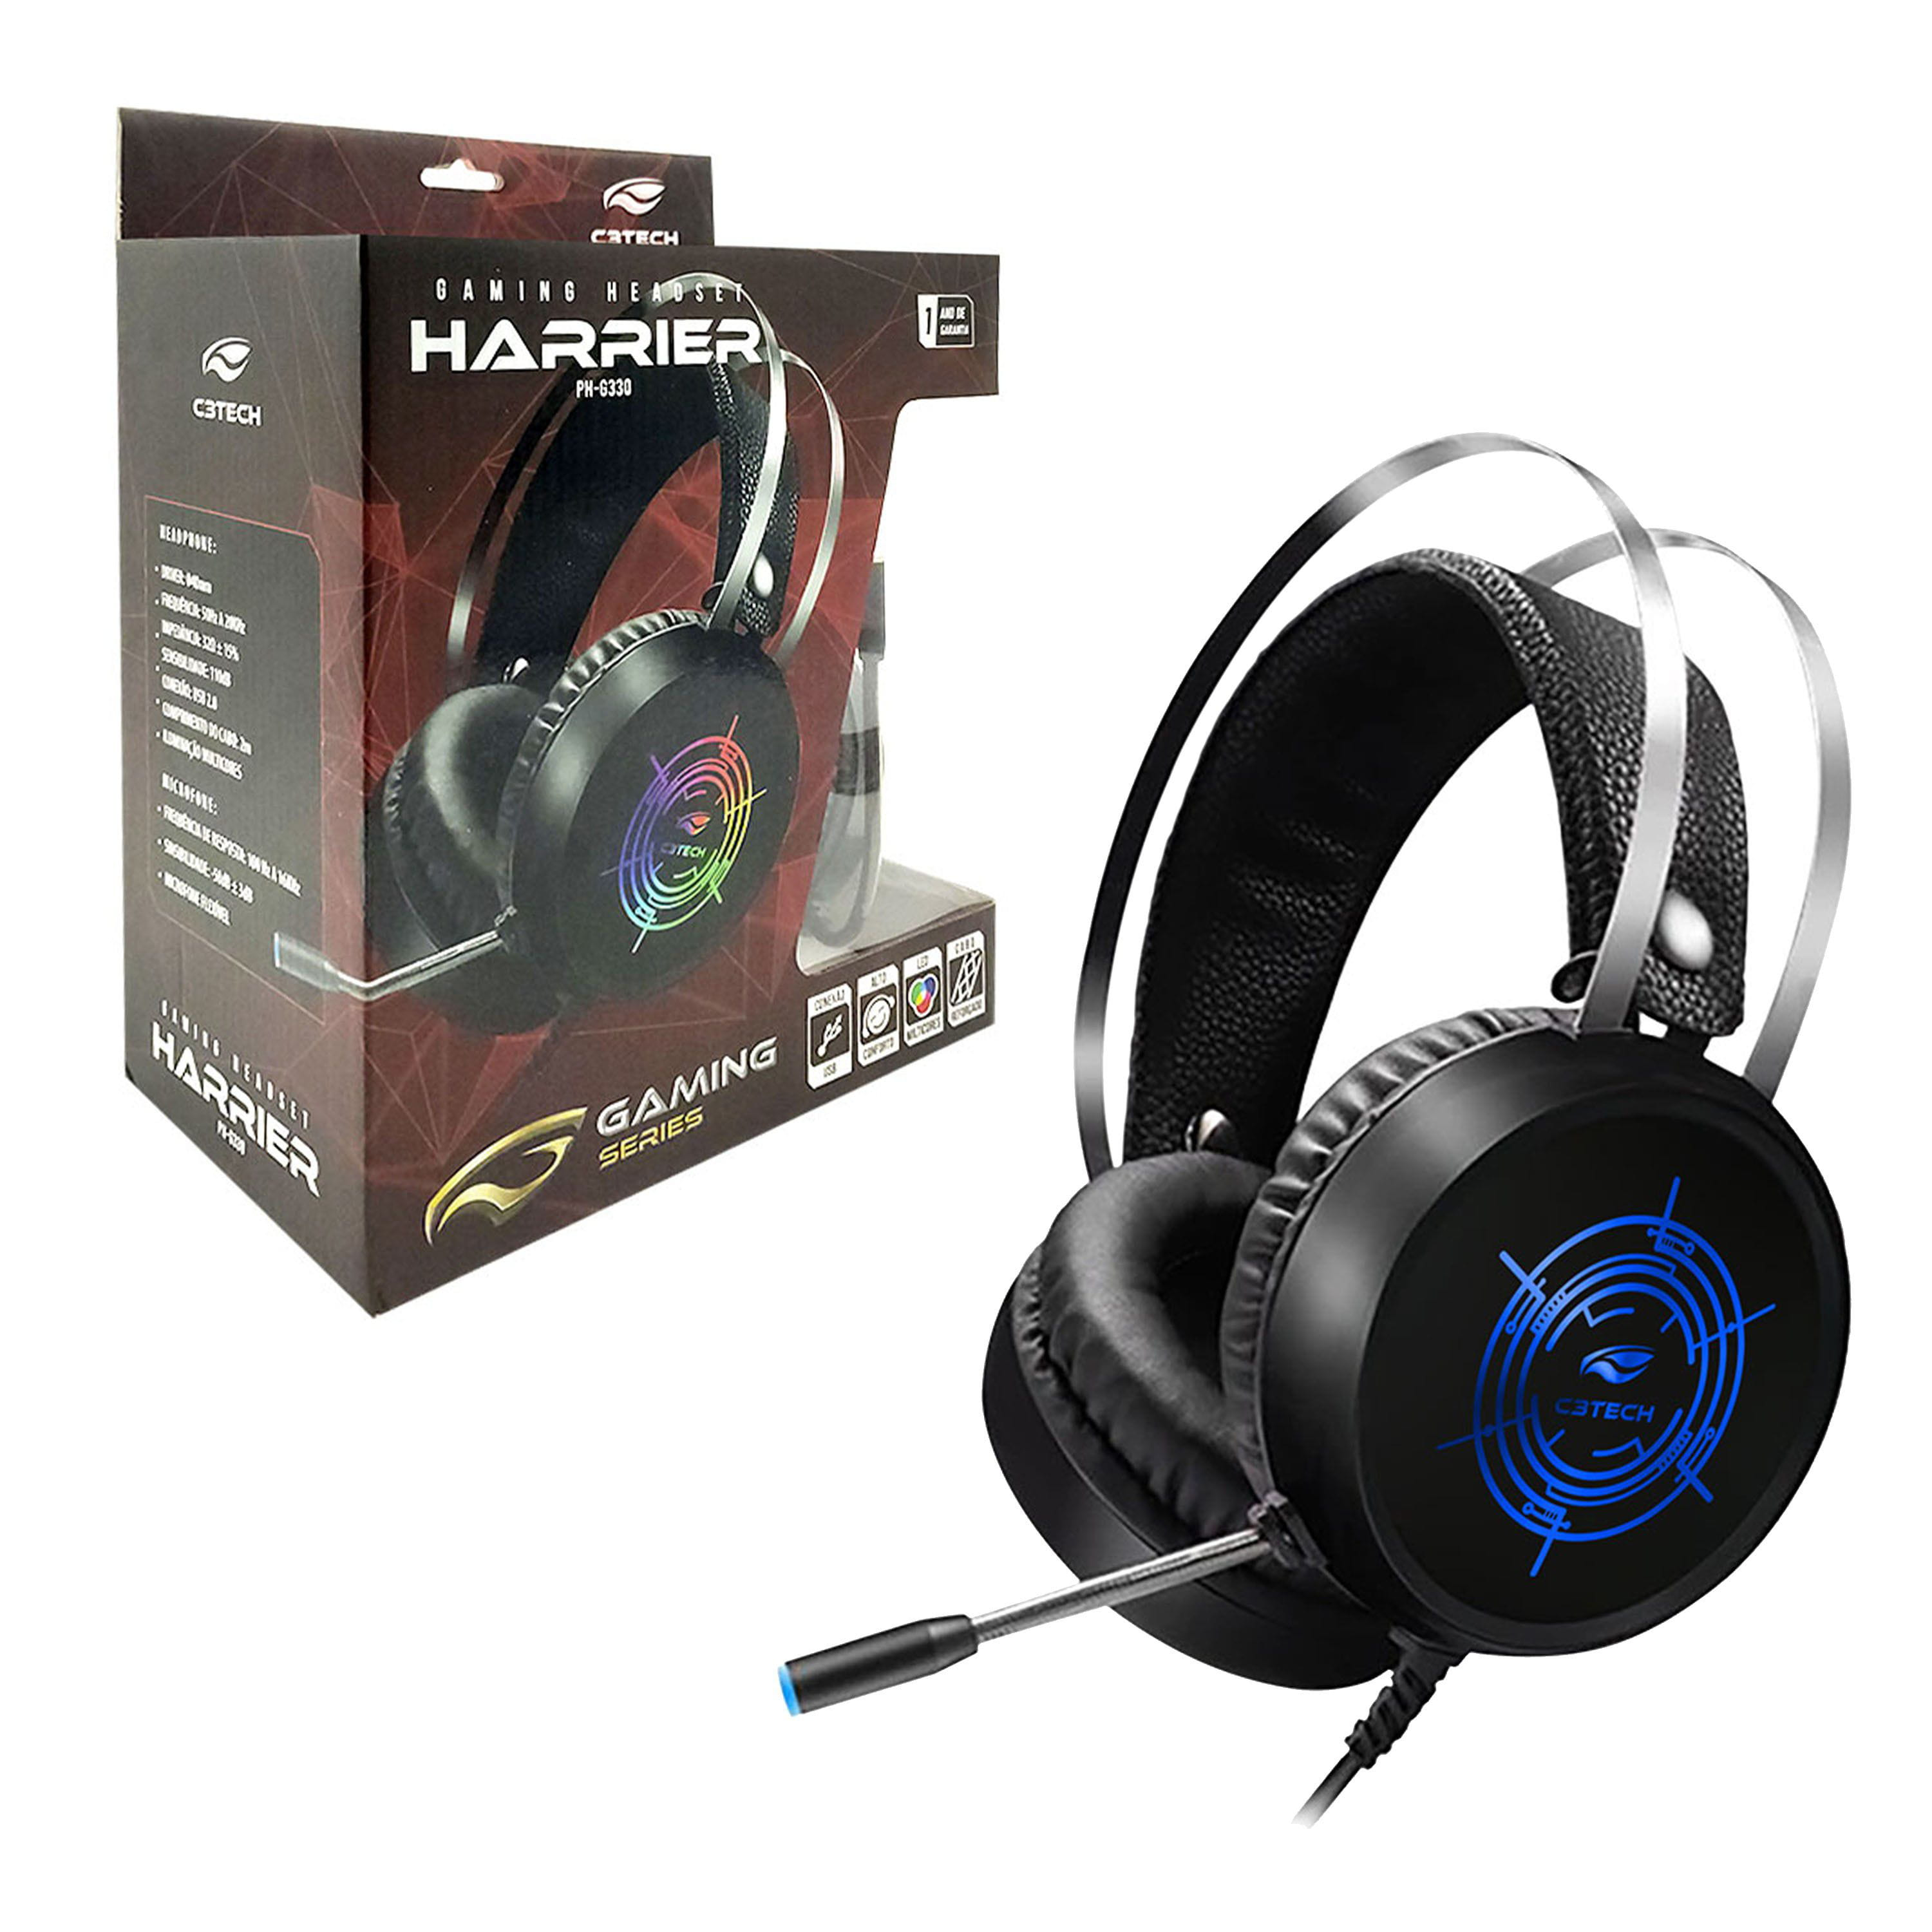 Headset Gamer USB C3Tech Harrier II PH-G330V2 LED Preto 2m de Cabo